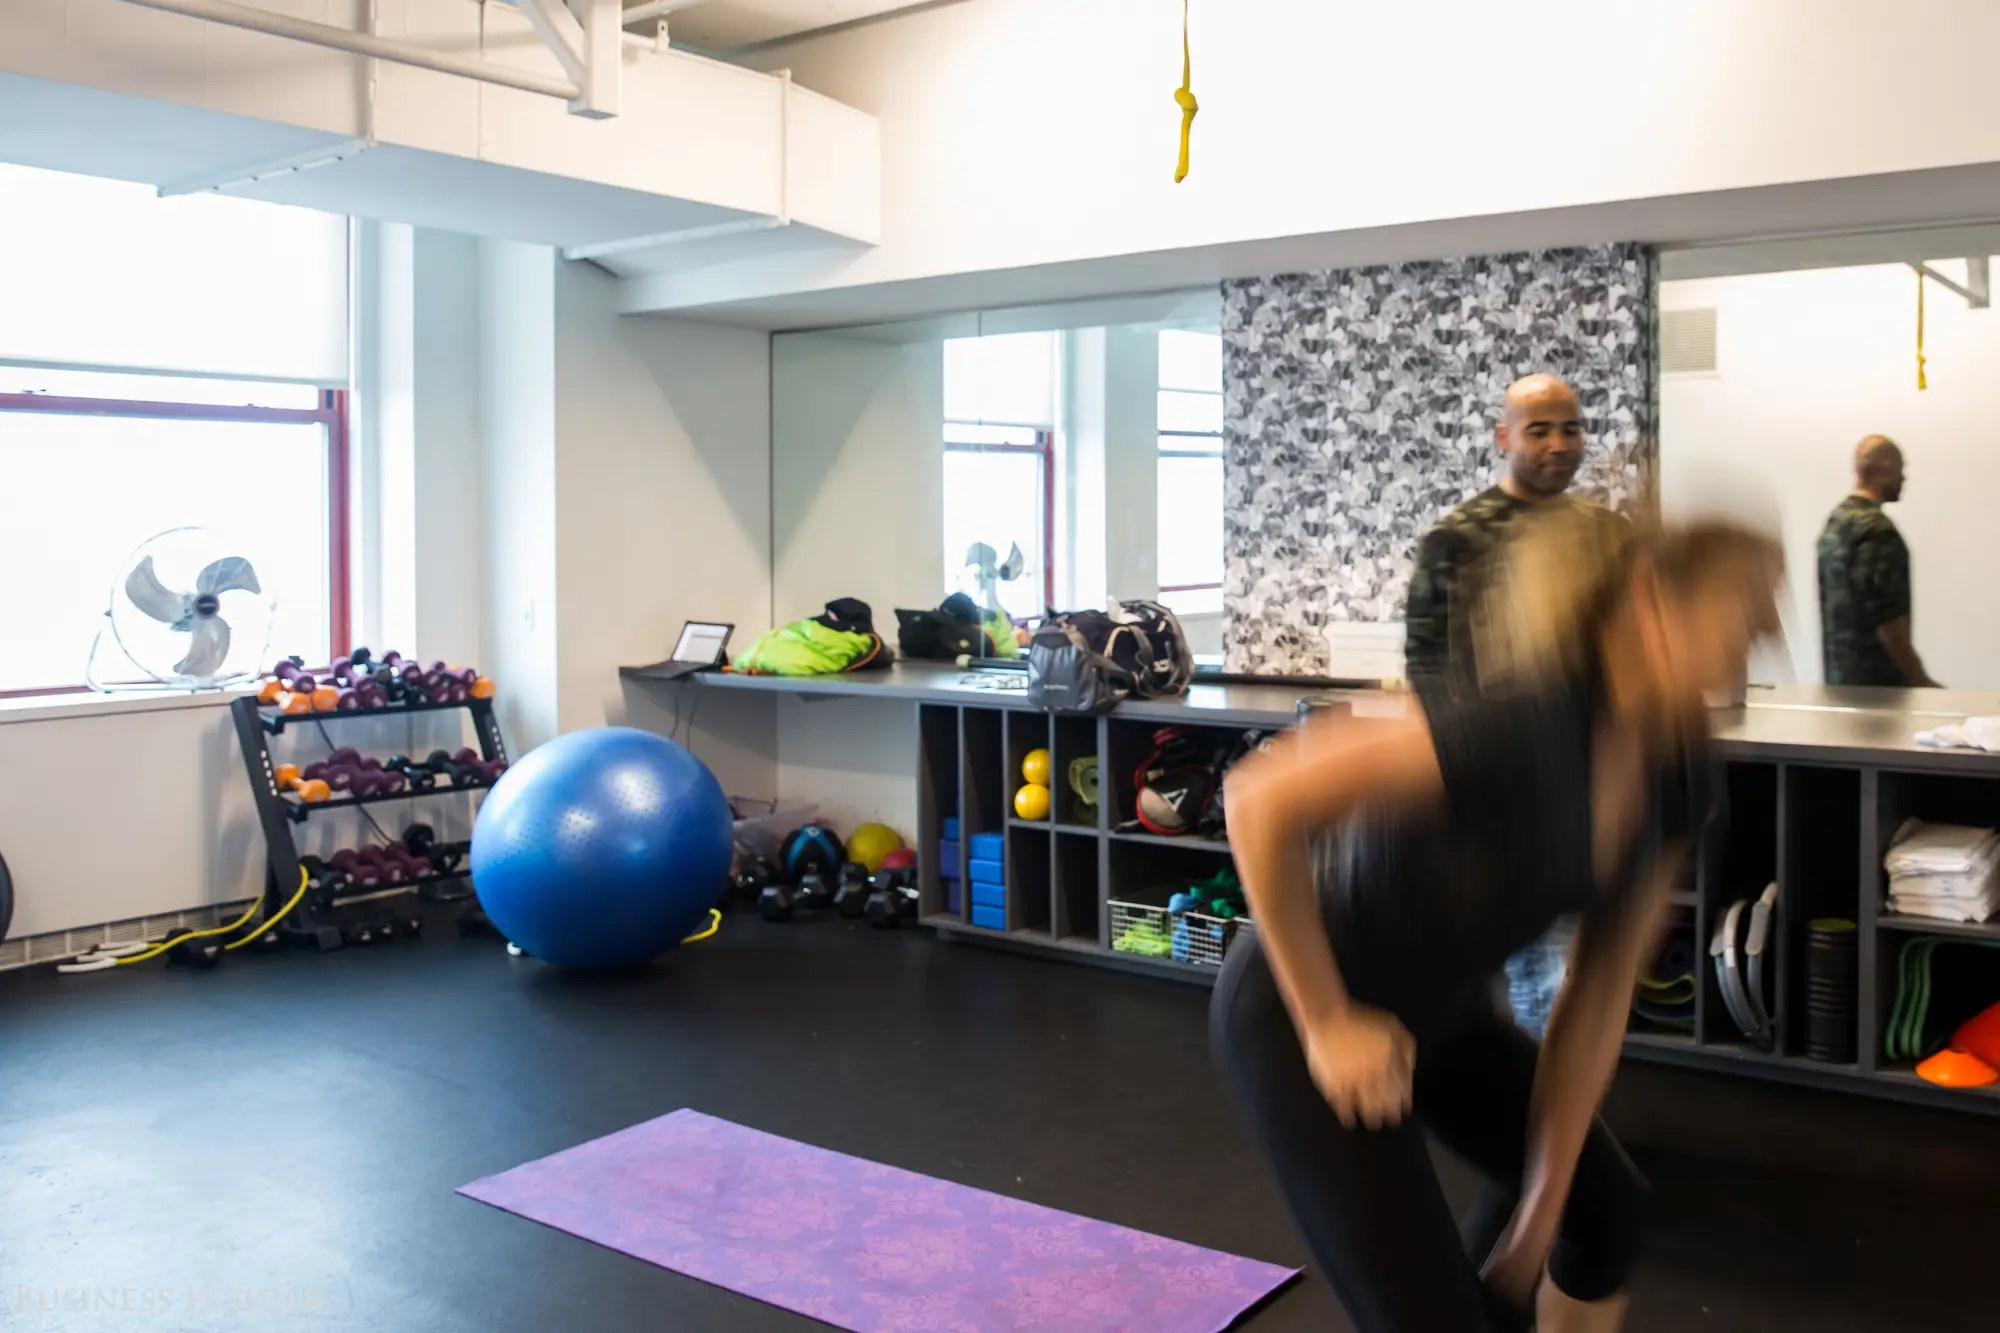 One of our very last stops was the gym. Employees don't have to leave the building to exercise. The office gym offers boot camp, barre, yoga, and group fitness classes. According to Kniffin, the perks are all about rewarding hard work and providing employees with a comfortable environment.